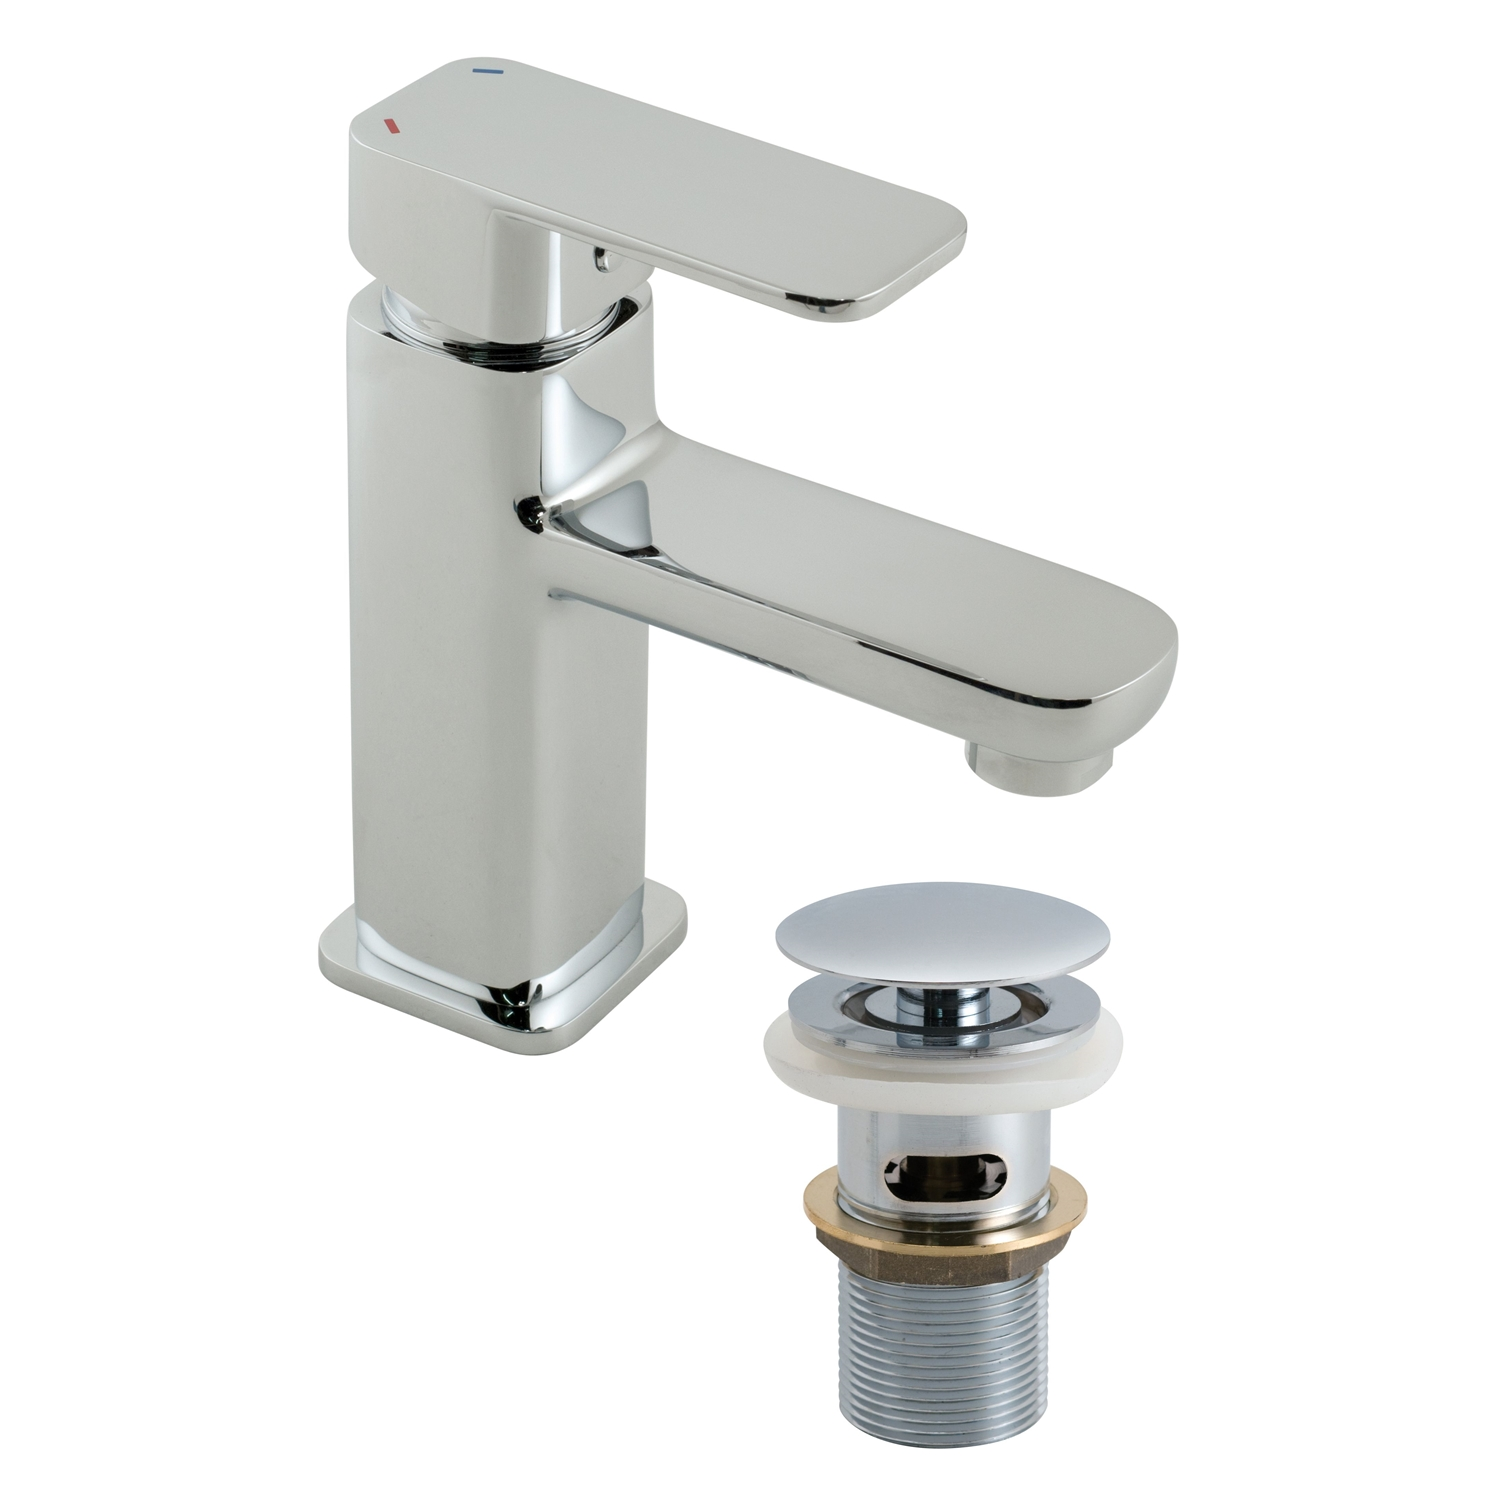 Image of Casa Palma Mono Basin Mixer with Clic Clac Waste, Chrome